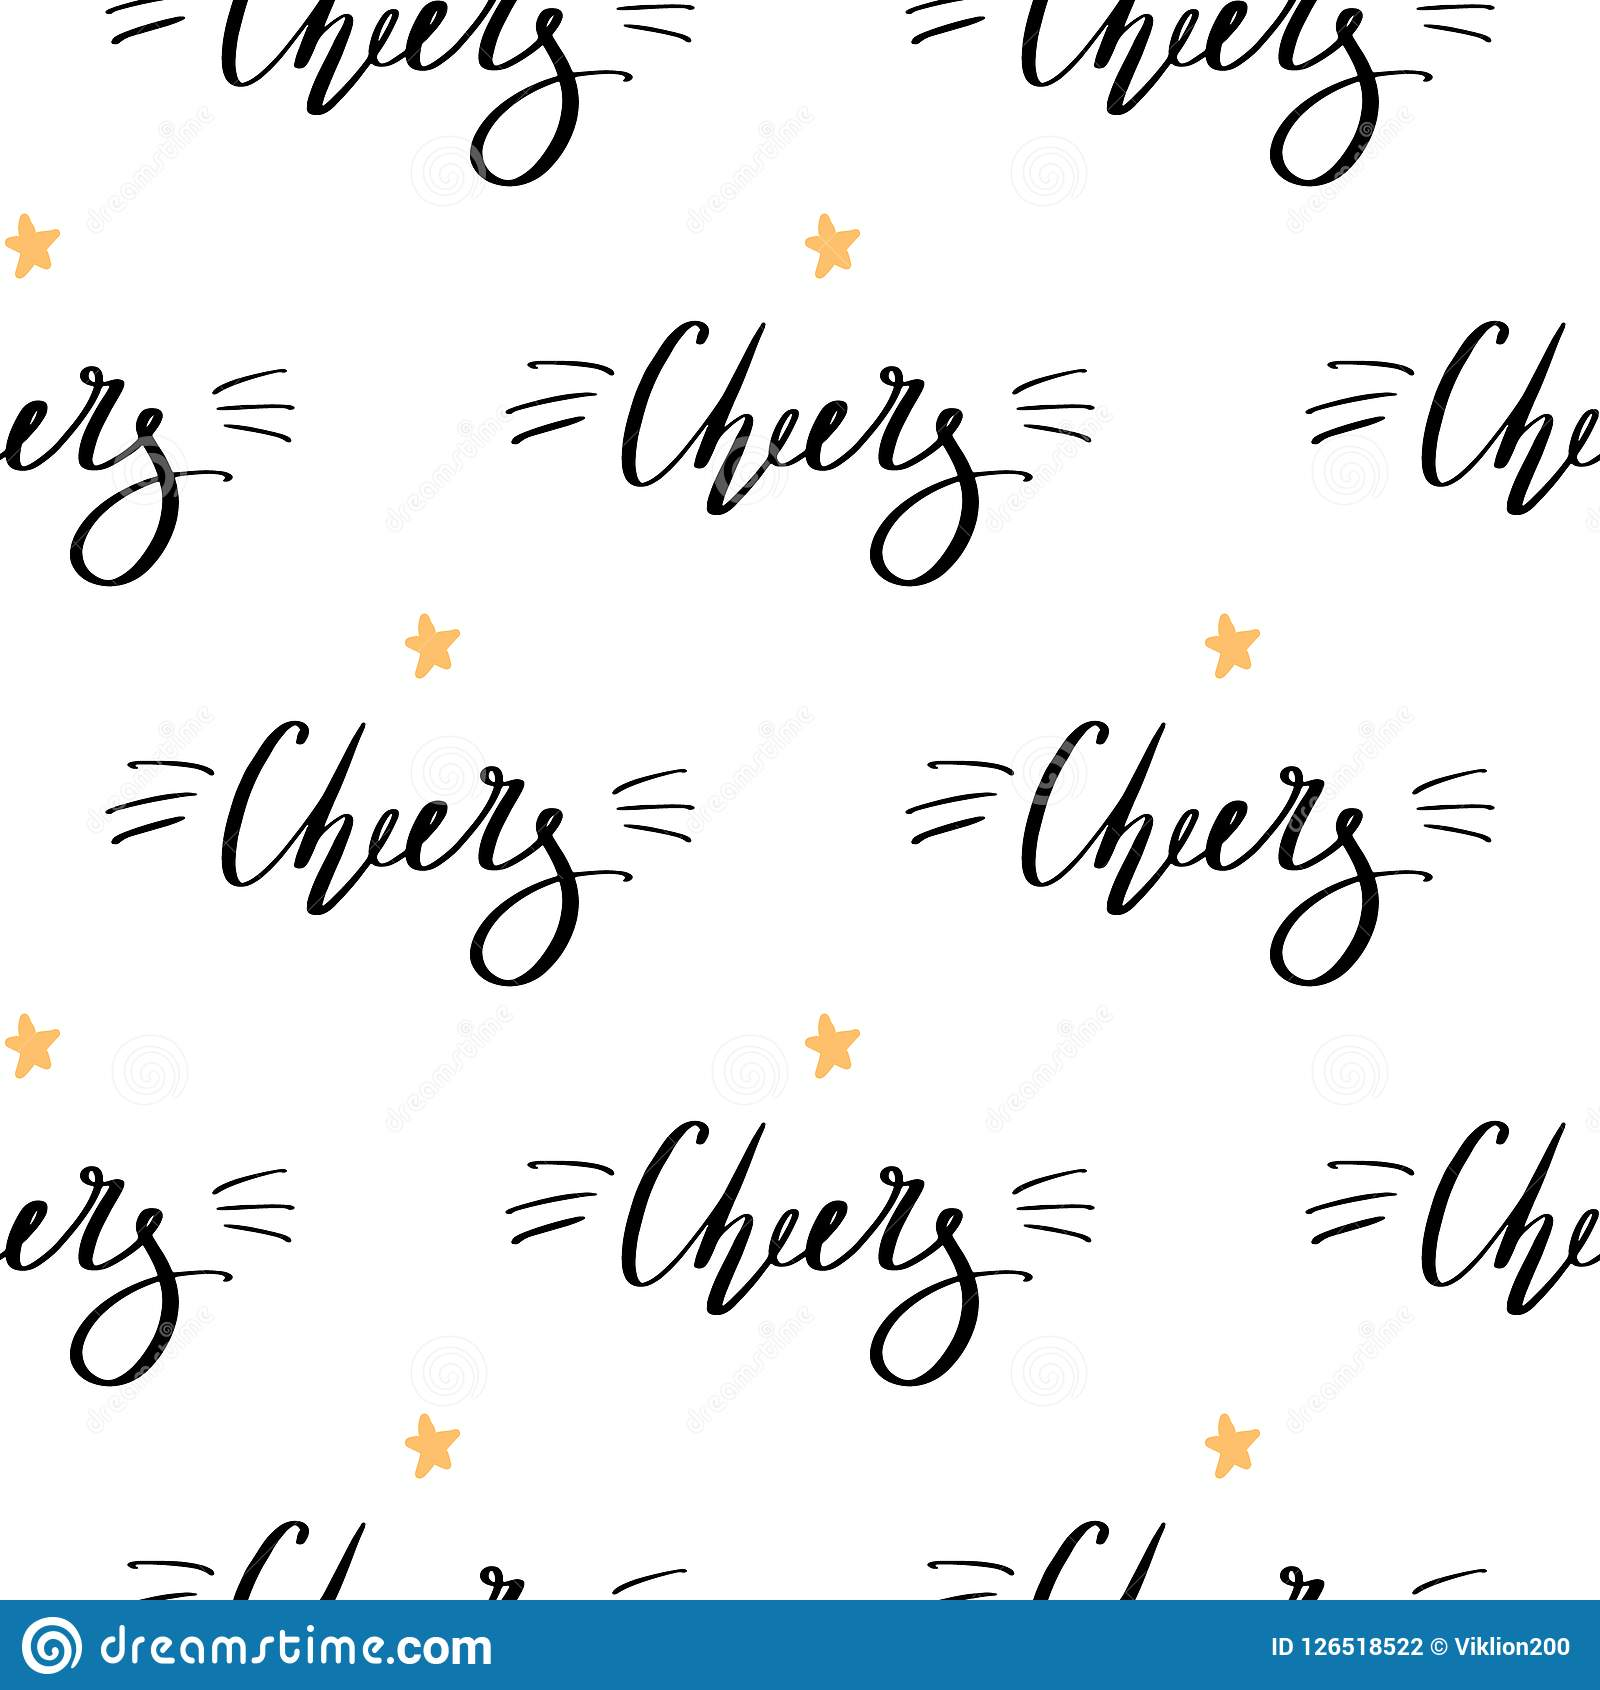 Christmas Background With Handdrawn Lettering Cheers Black Fonts ...